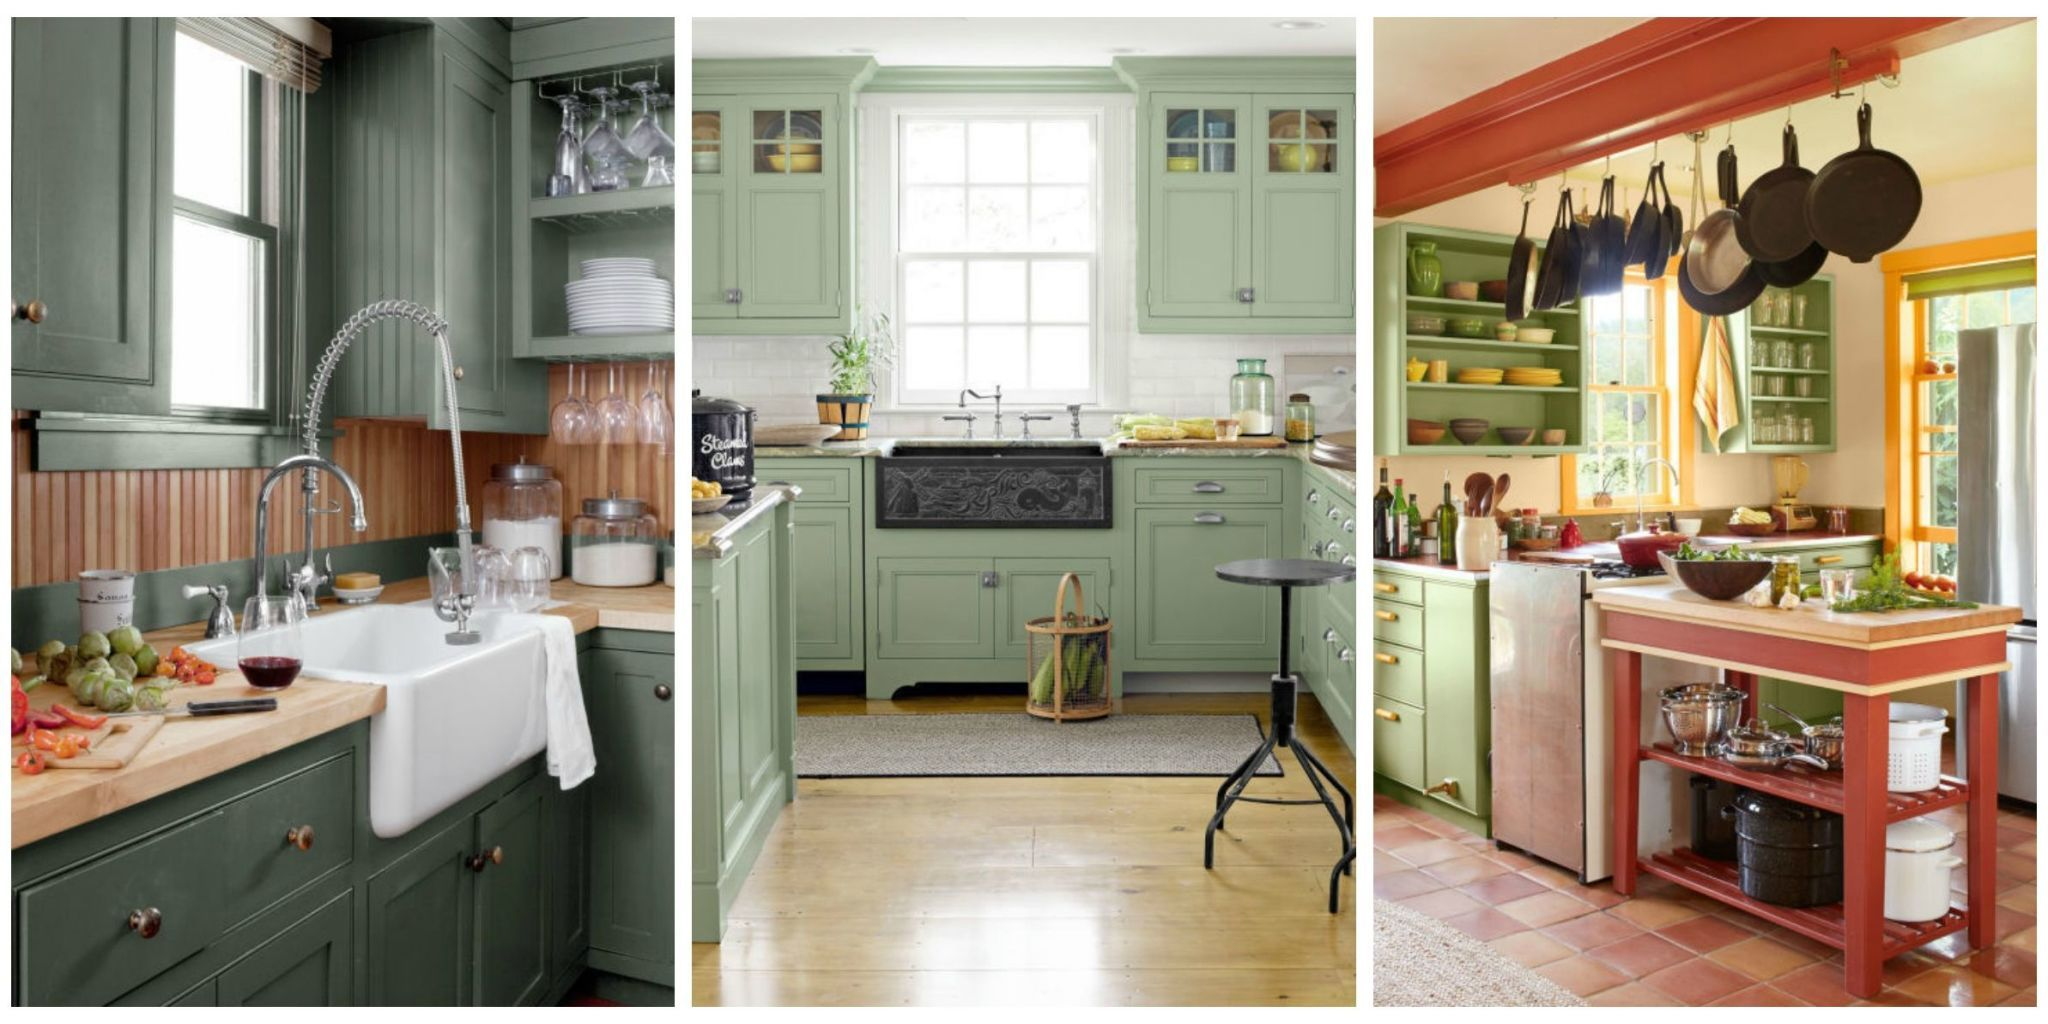 Etonnant Weu0027re Here To Give You The Green Light To Proceed With Your Next Home  Improvement Project! With Paint Options Ranging From Mint To Sage, These Green  Kitchen ...